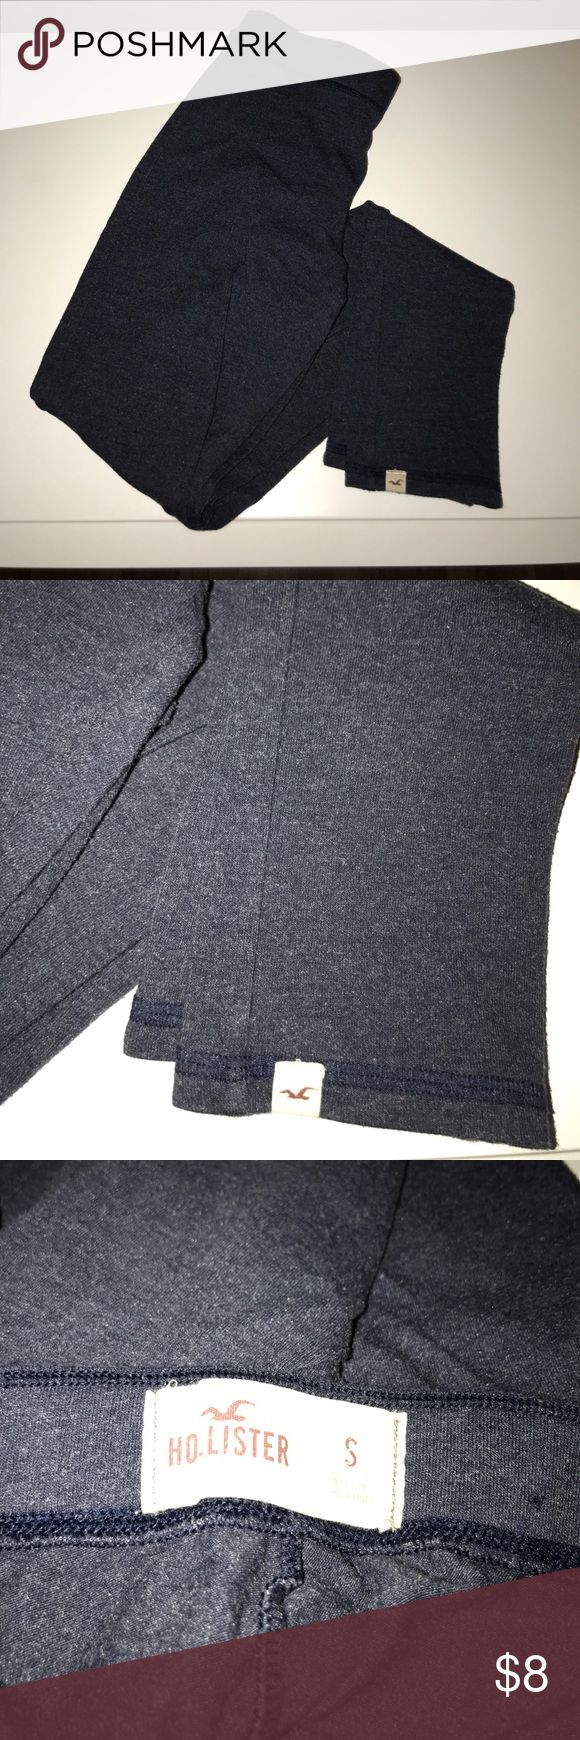 Hollister Navy Leggings Hollister leggings in navy. Fits XS-S. Super comfortable leggings. Worn, but good condition. Comes from smoke free and pet free home. Hollister Pants Leggings